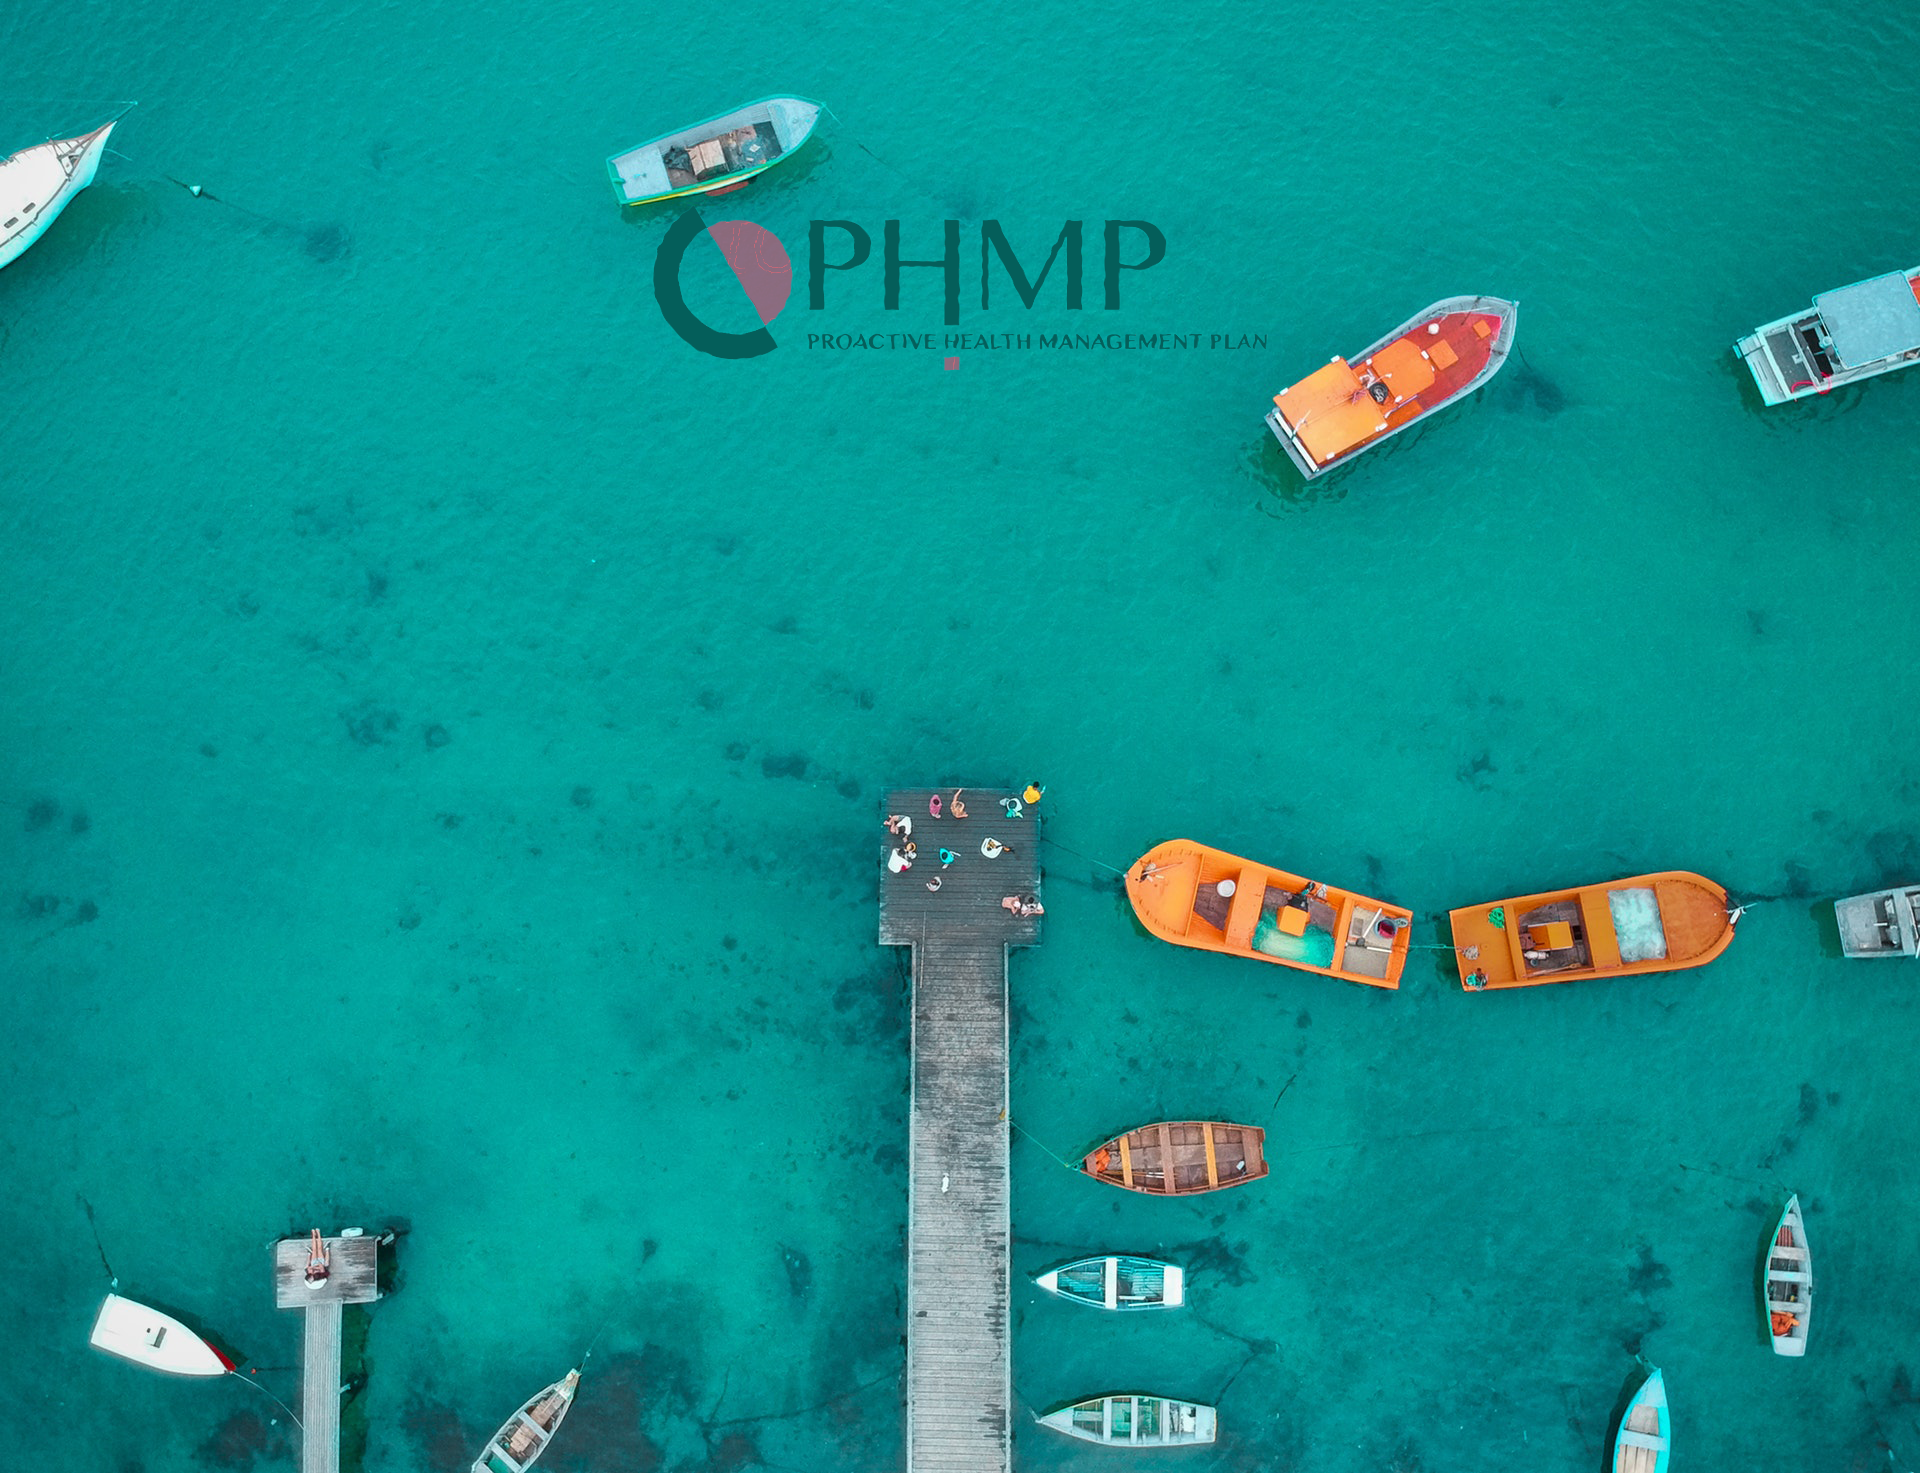 About the PHMP